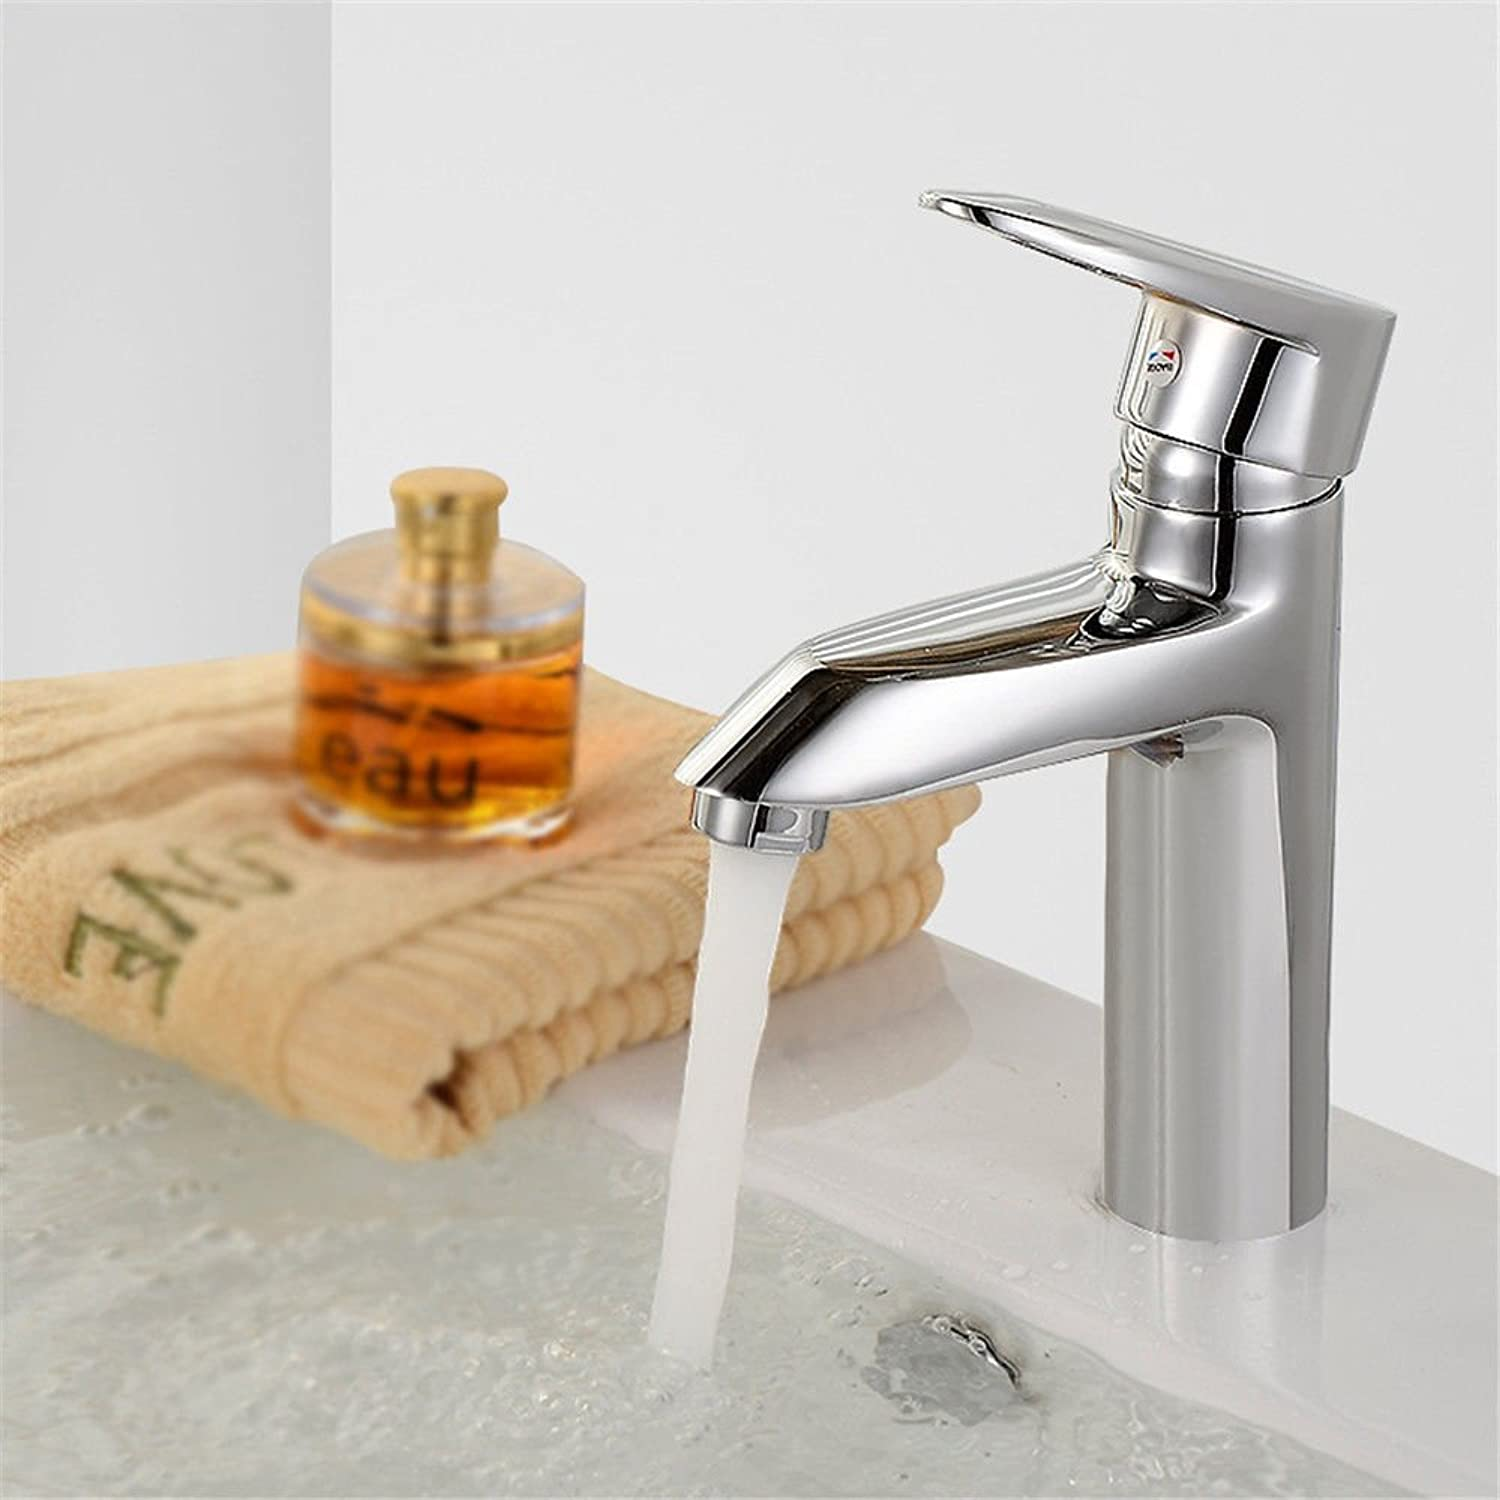 ETERNAL QUALITY Bathroom Sink Basin Tap Brass Mixer Tap Washroom Mixer Faucet Basin mixer SINGLE LEVER SINGLE HOLE full copper cold water faucet Washbasin Faucet with hig